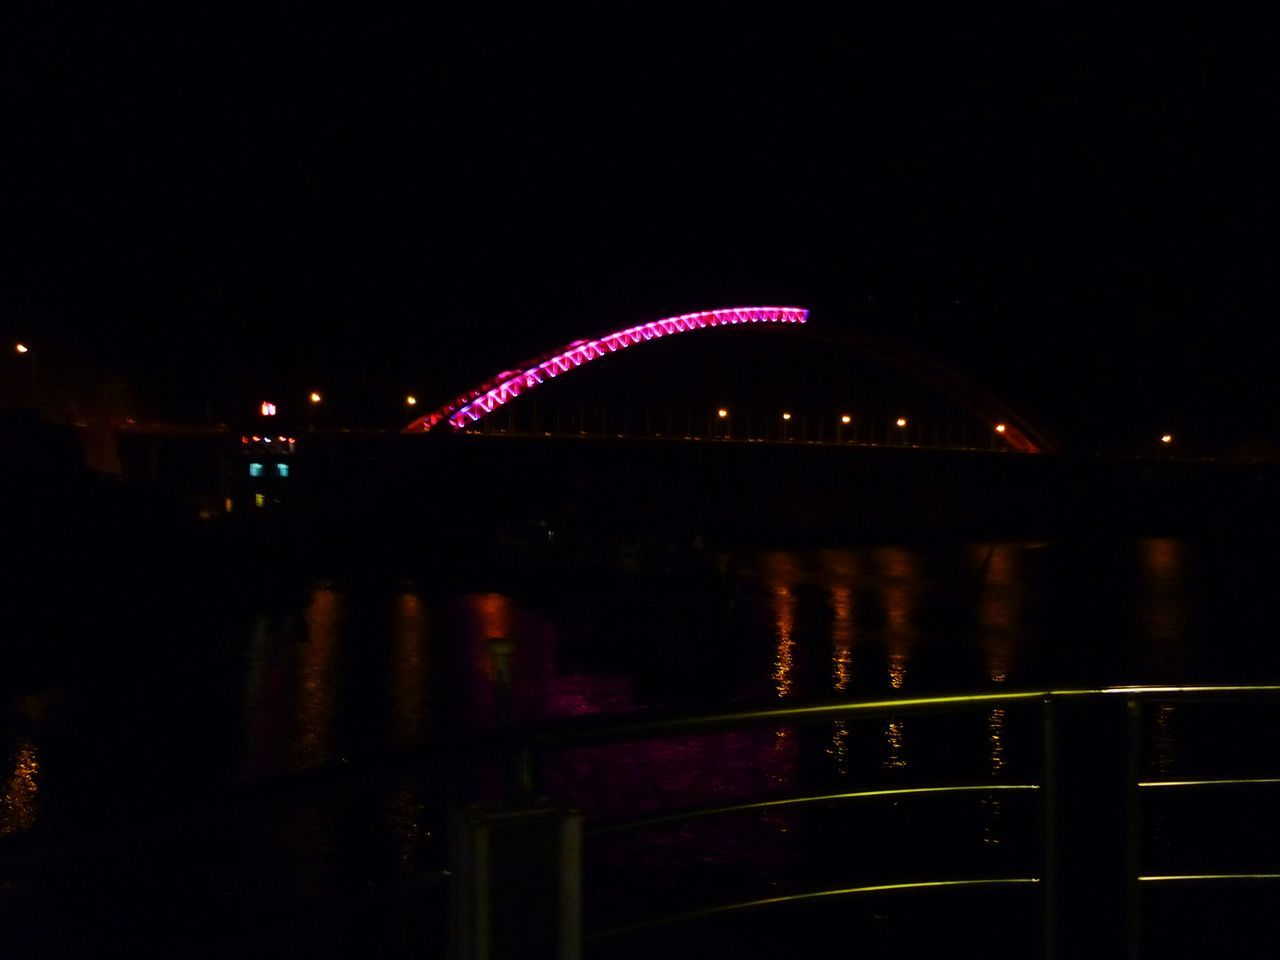 night, illuminated, bridge - man made structure, outdoors, connection, arts culture and entertainment, architecture, no people, built structure, multi colored, city, sky